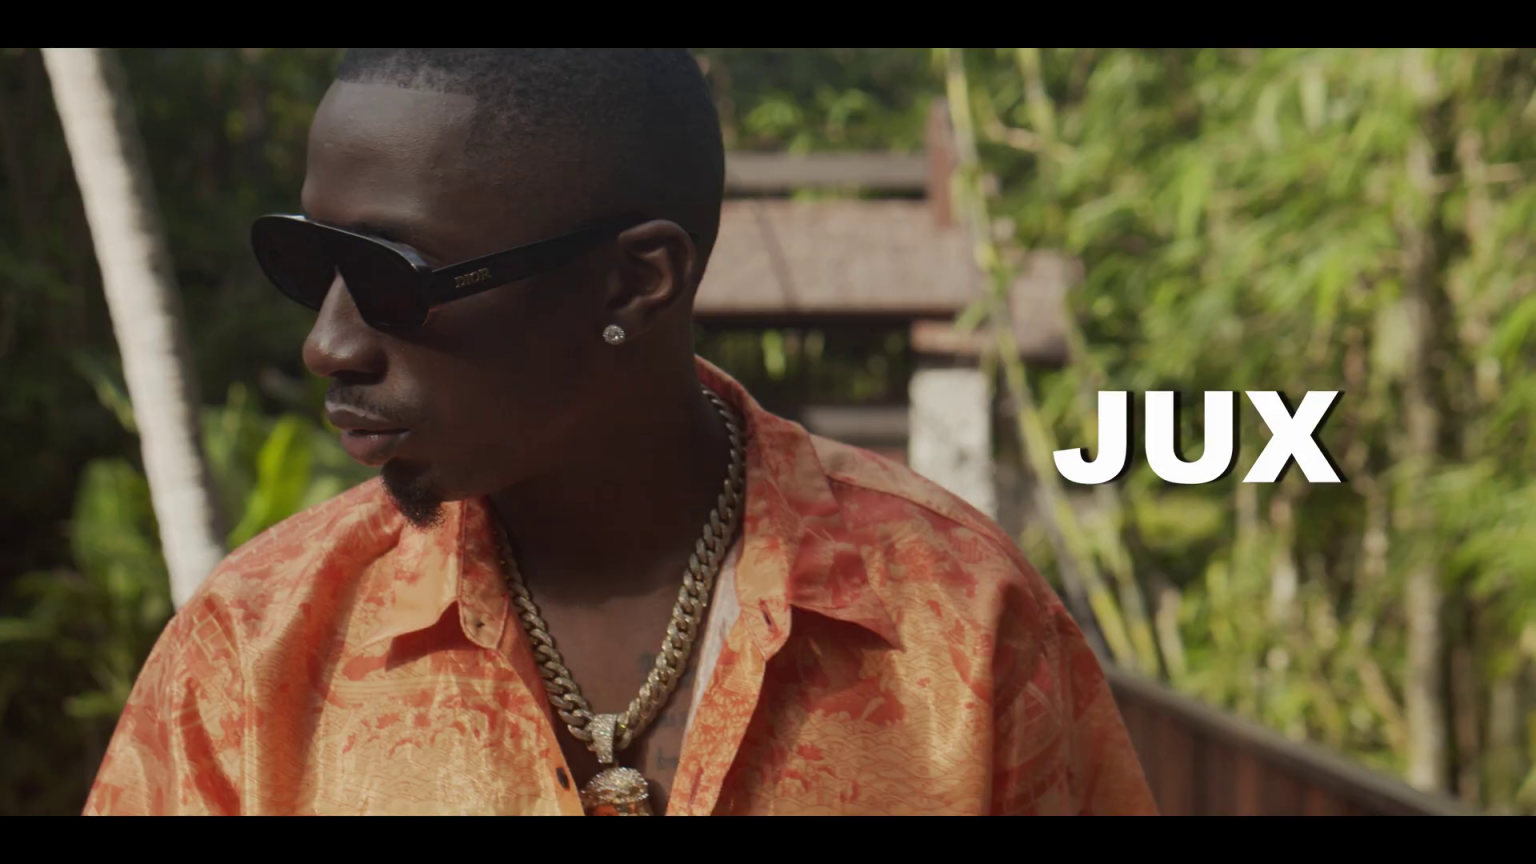 jux unaniweza video